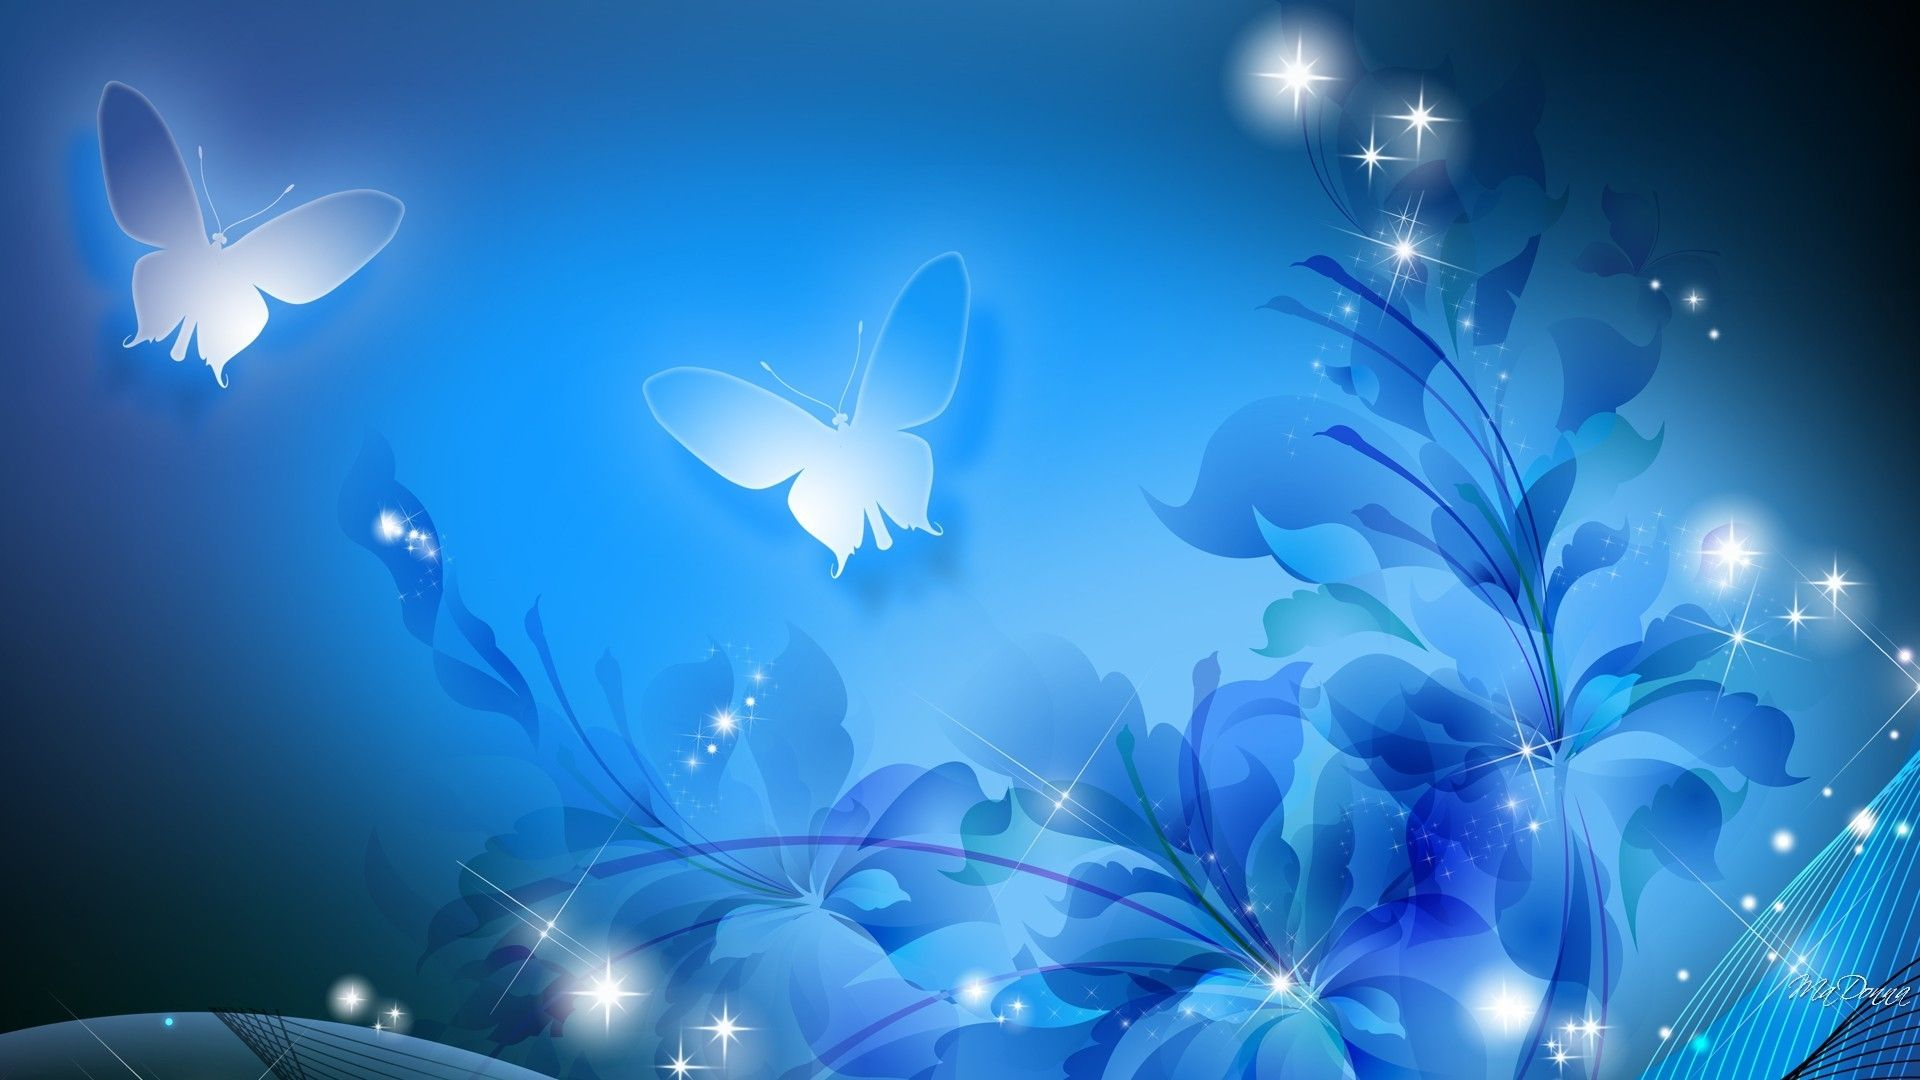 Cute Blue wallpaper and themes